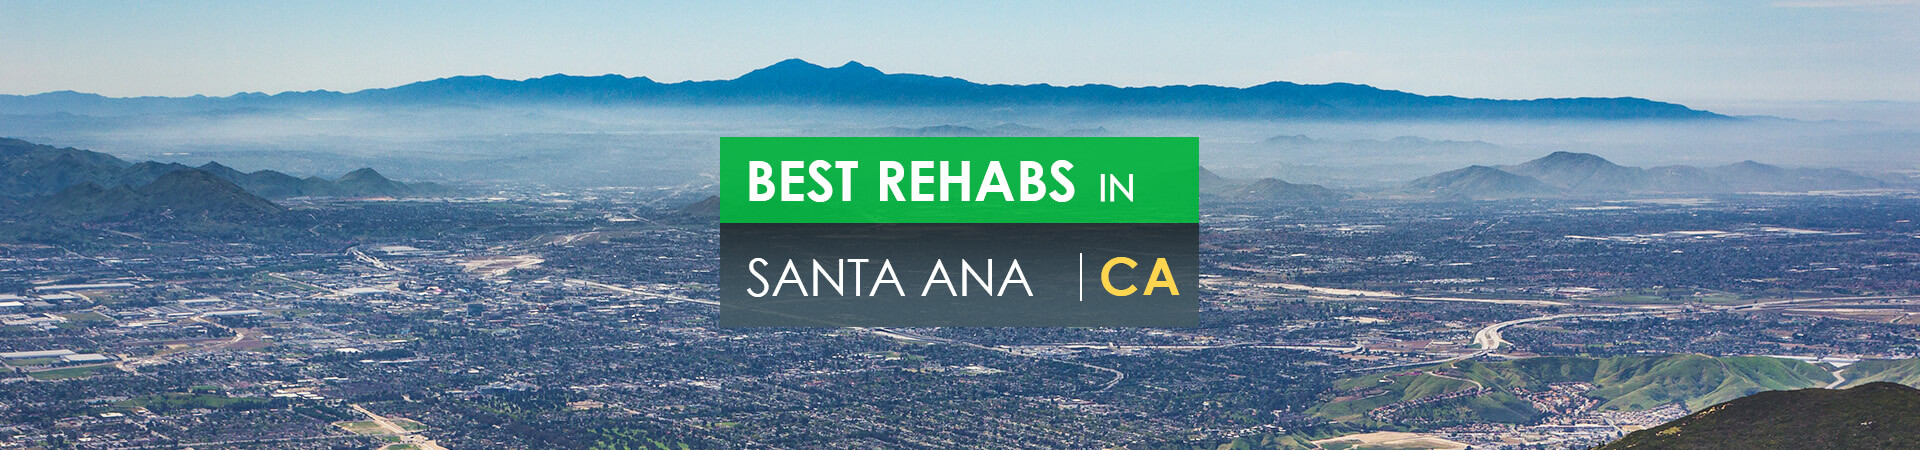 Best rehabs in Santa Ana, CA